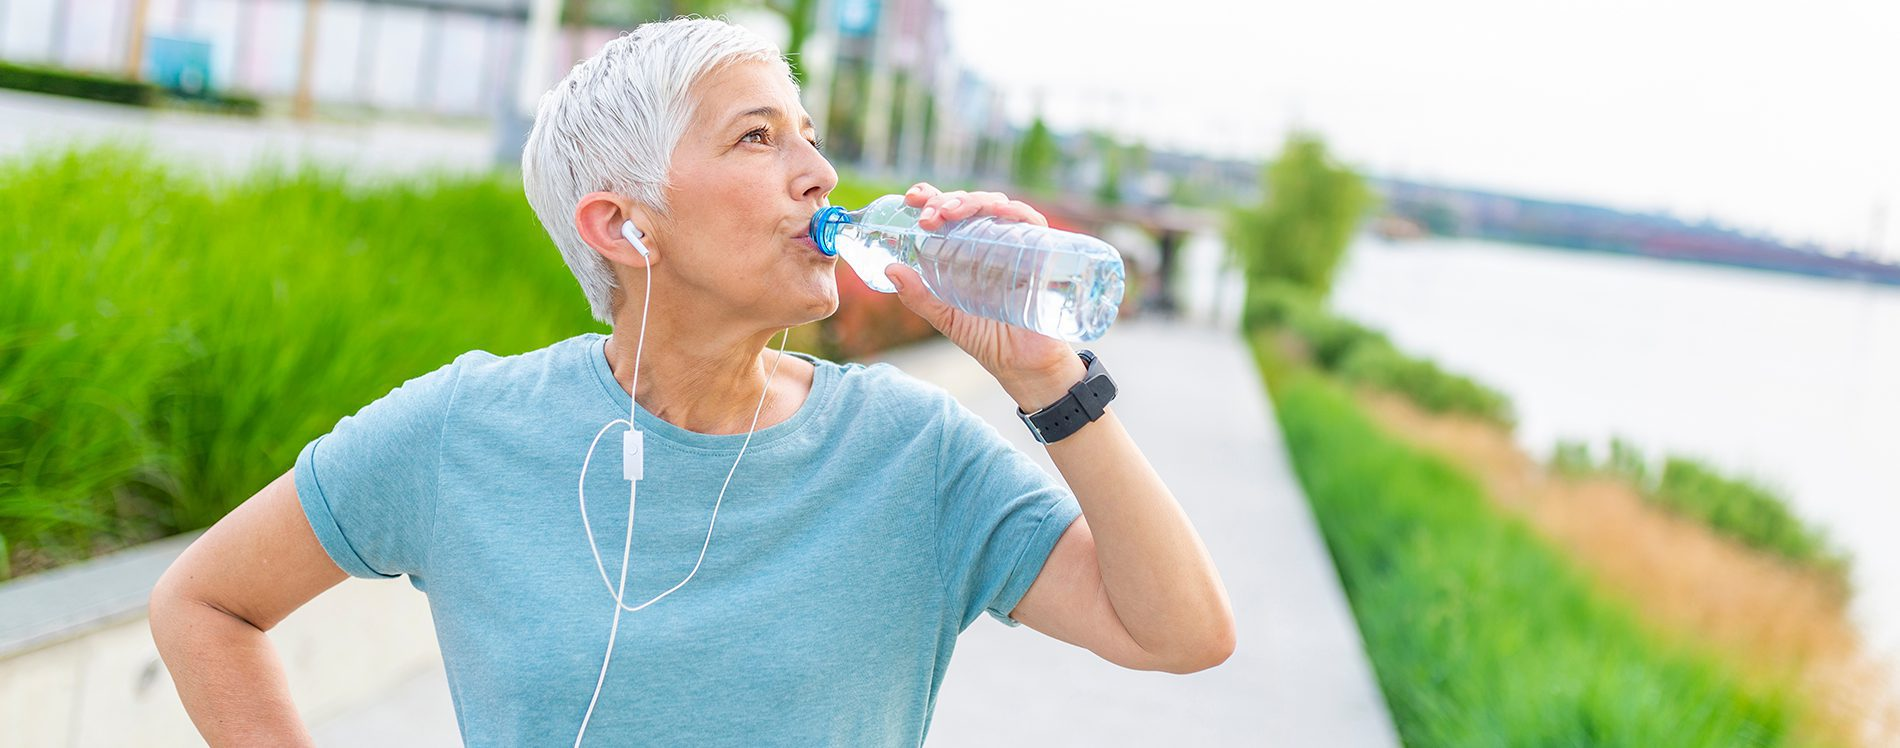 Older person drinking water while exercising.